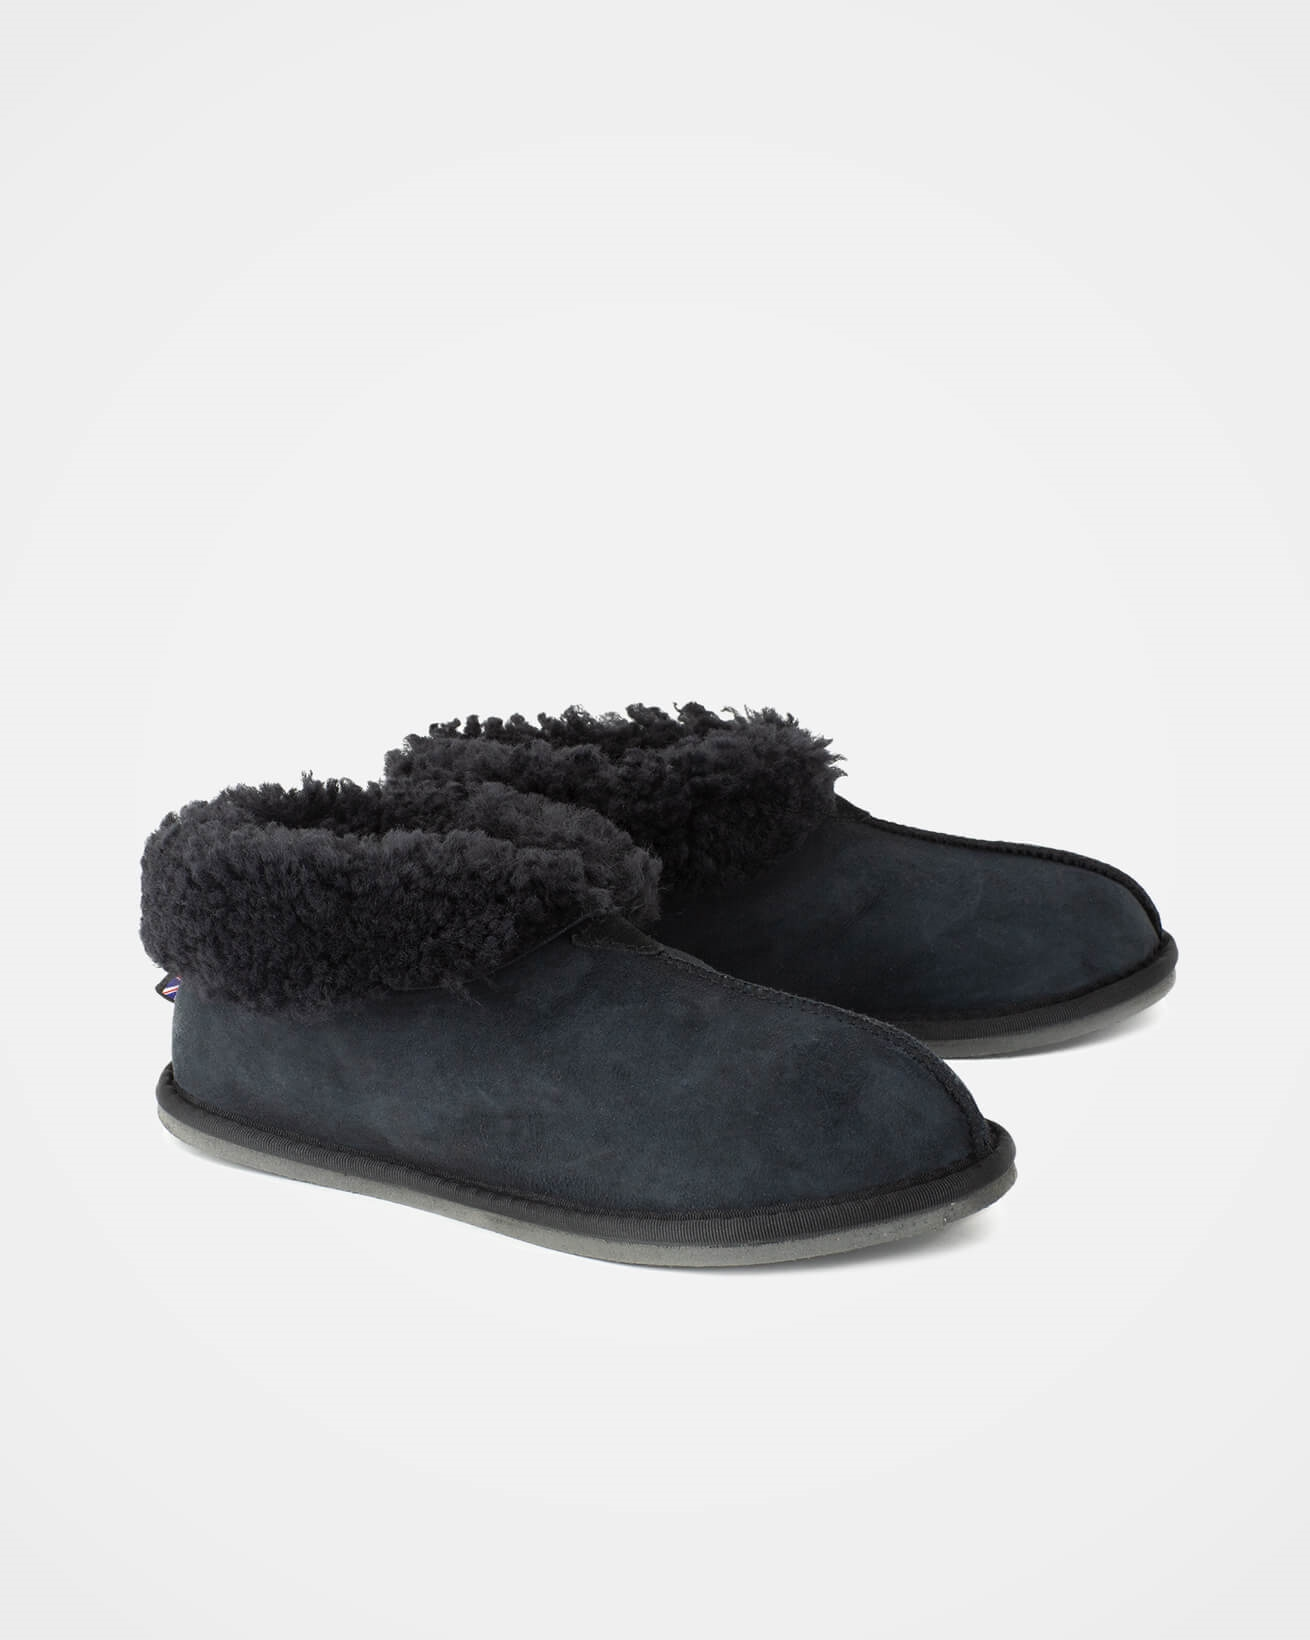 Mens Sheepskin Bootee Slippers - Size 10 - Navy - 2084